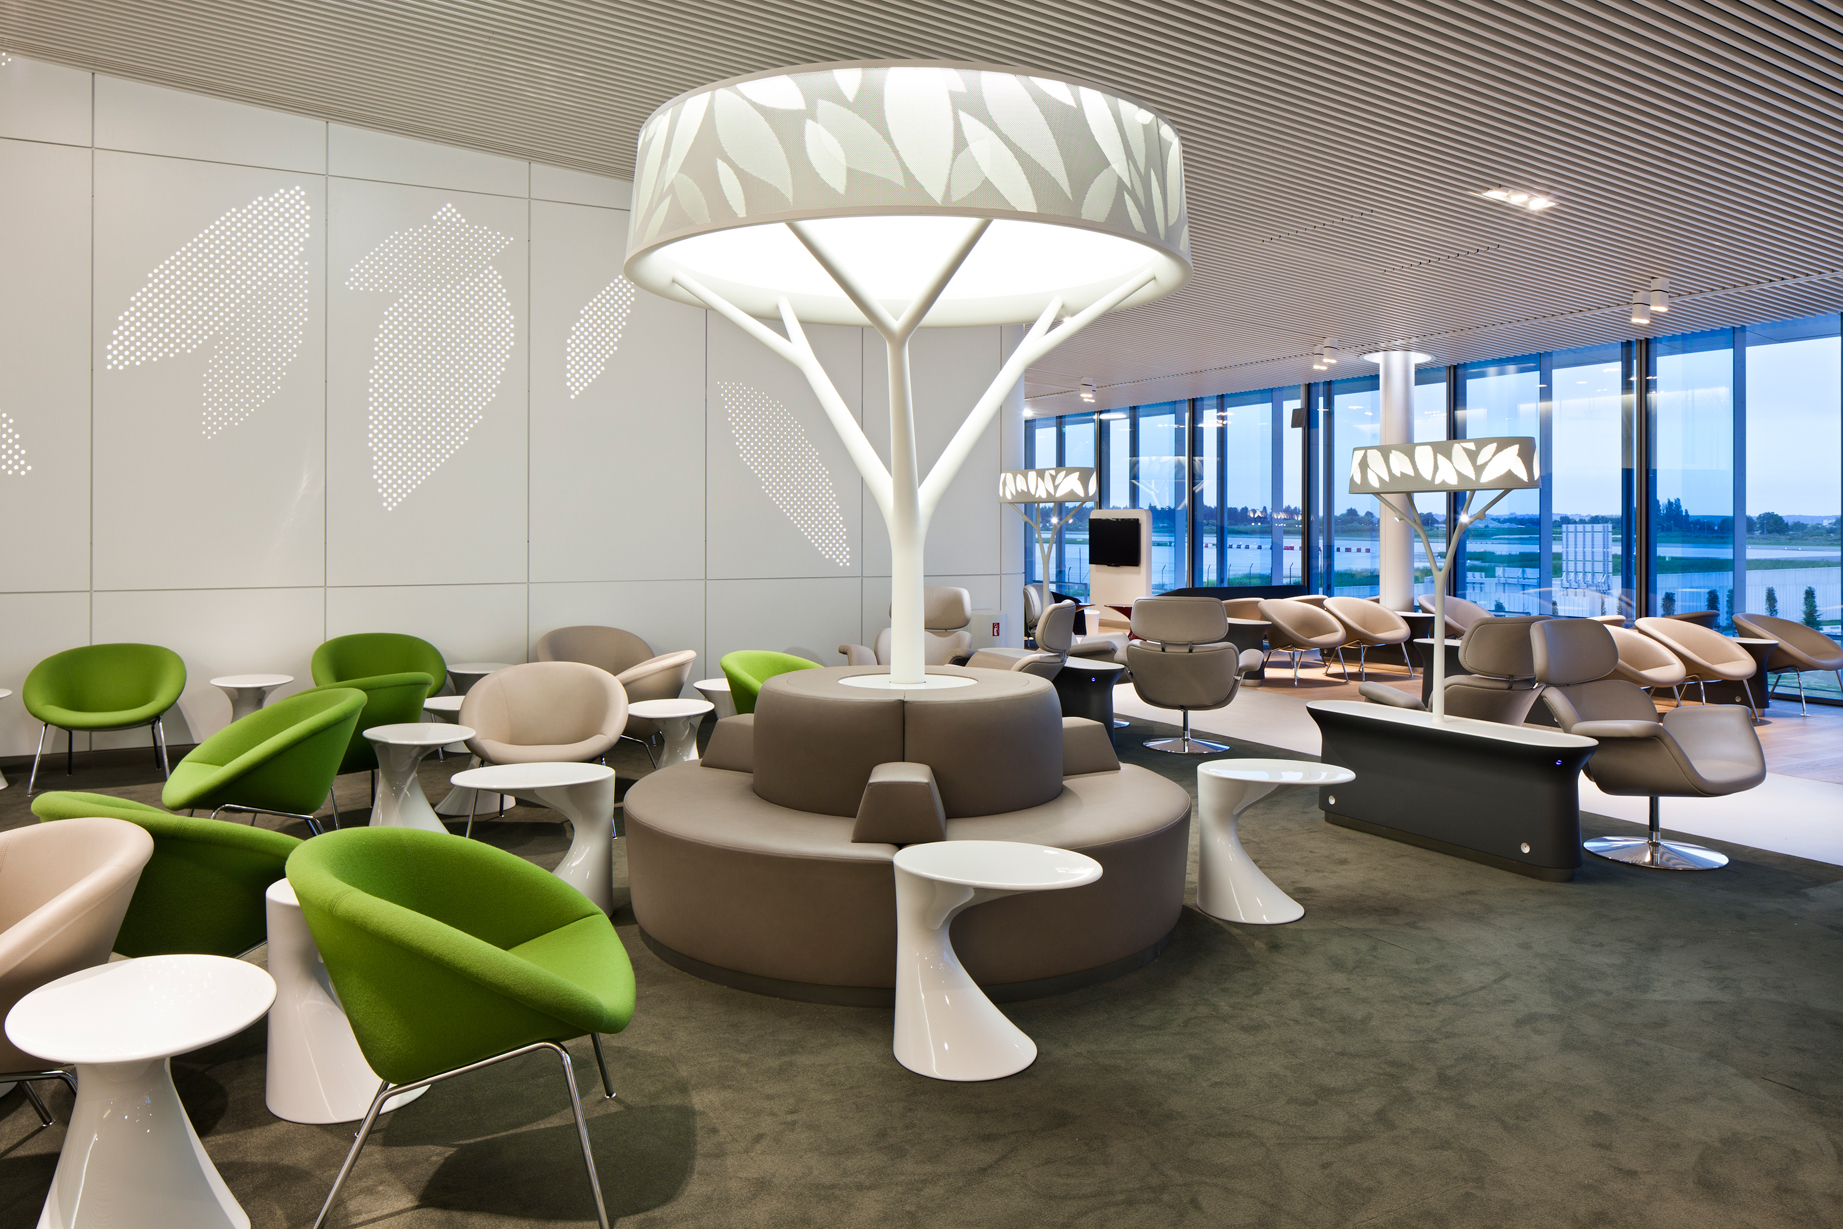 Thedesignair top 10 airport lounges 2012 thedesignair - Salon de the paris 13 ...